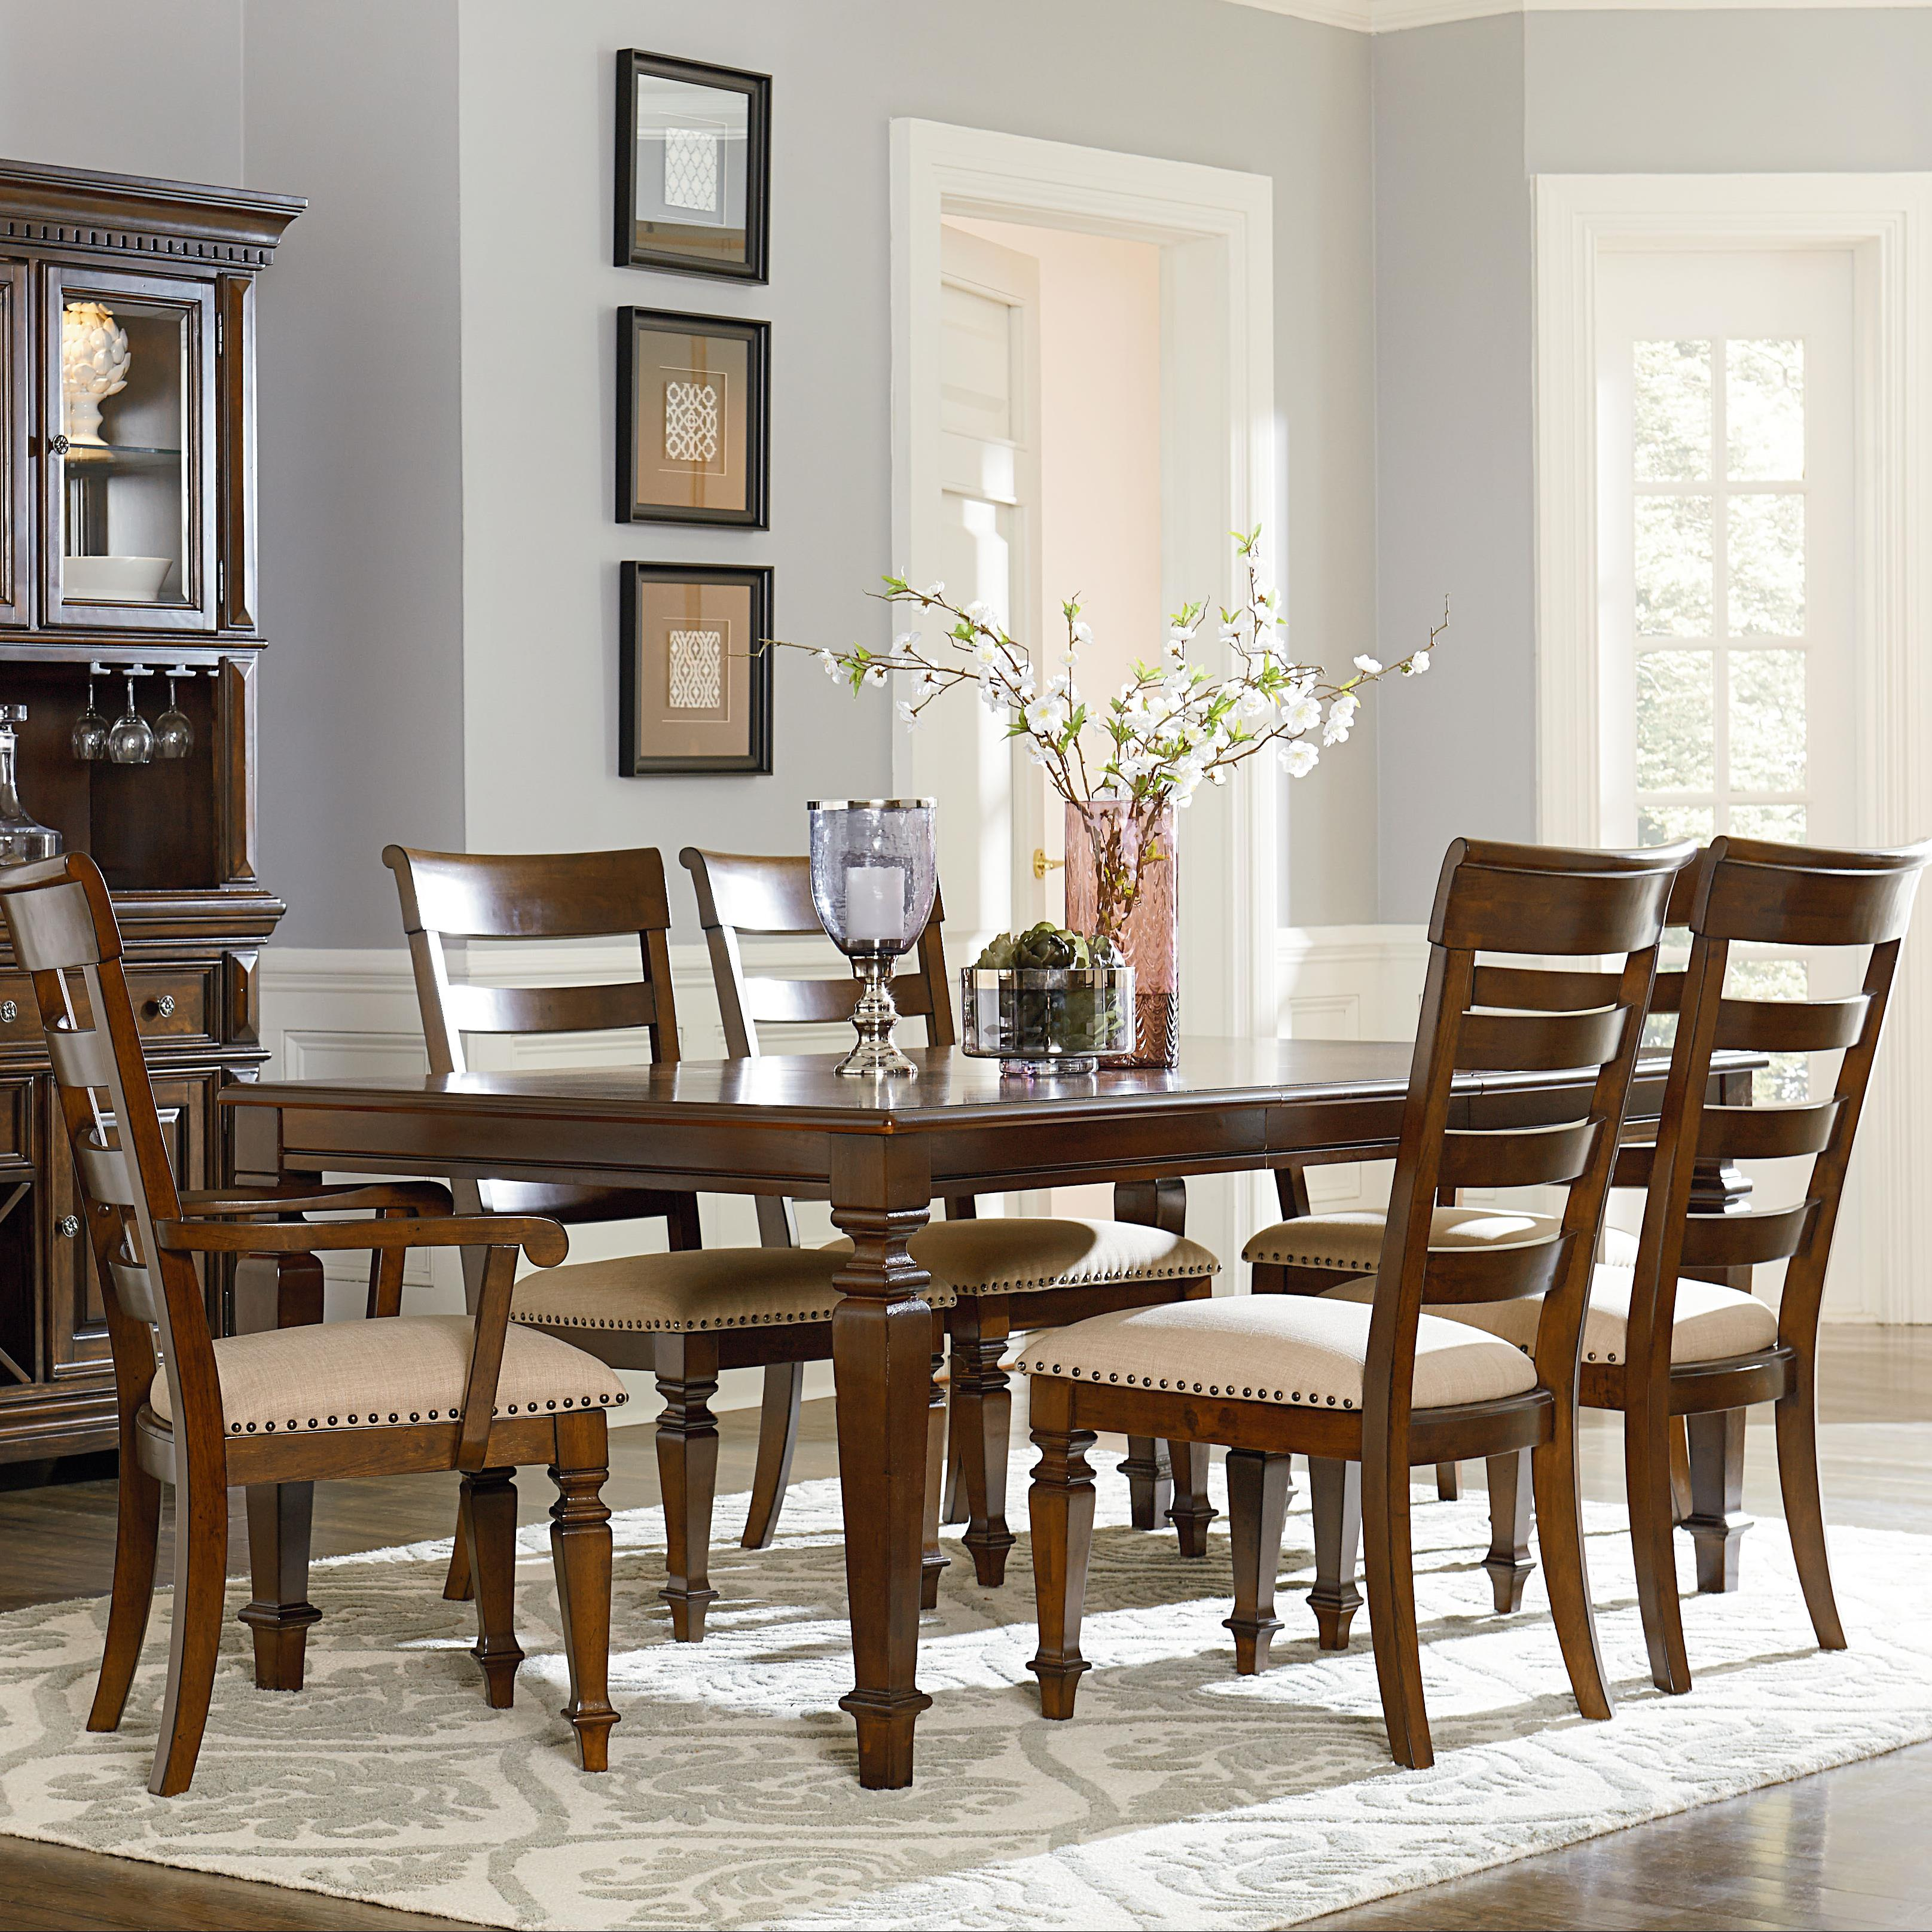 Standard Dining Room Table Size: Standard Furniture Charleston Dining Table With Legs And